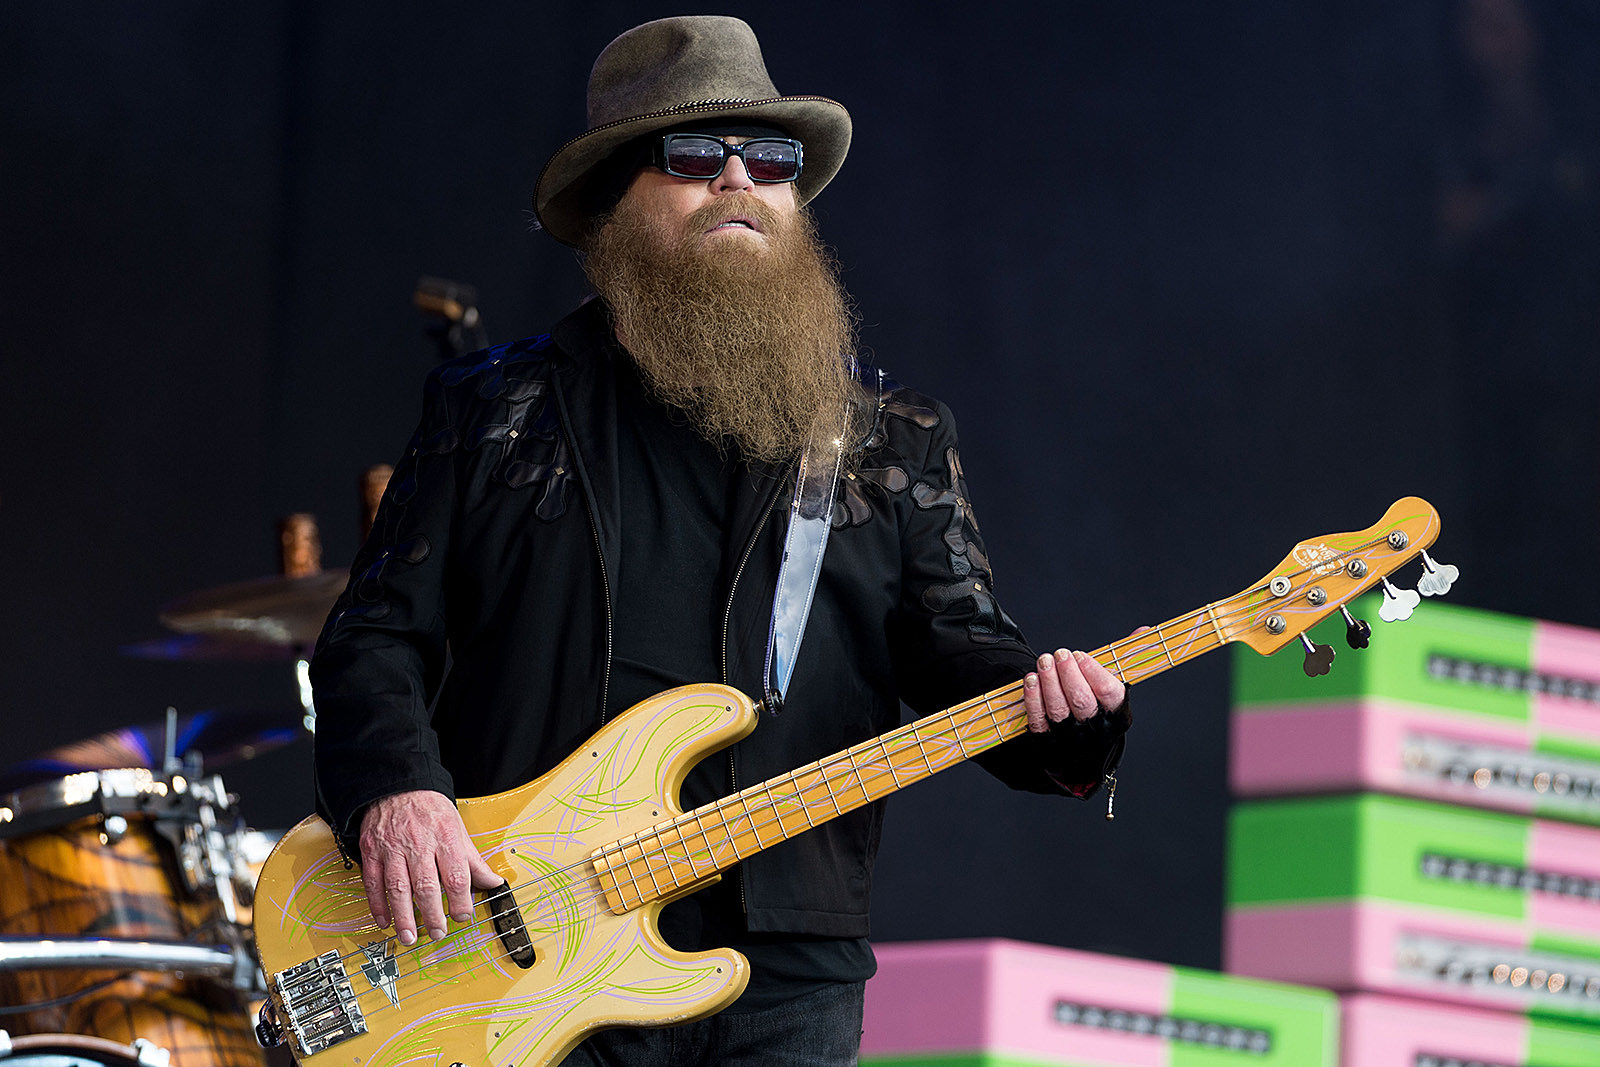 ZZ Top Warns Fans About 'Outrageous' Fake Dusty Hill Merchandise